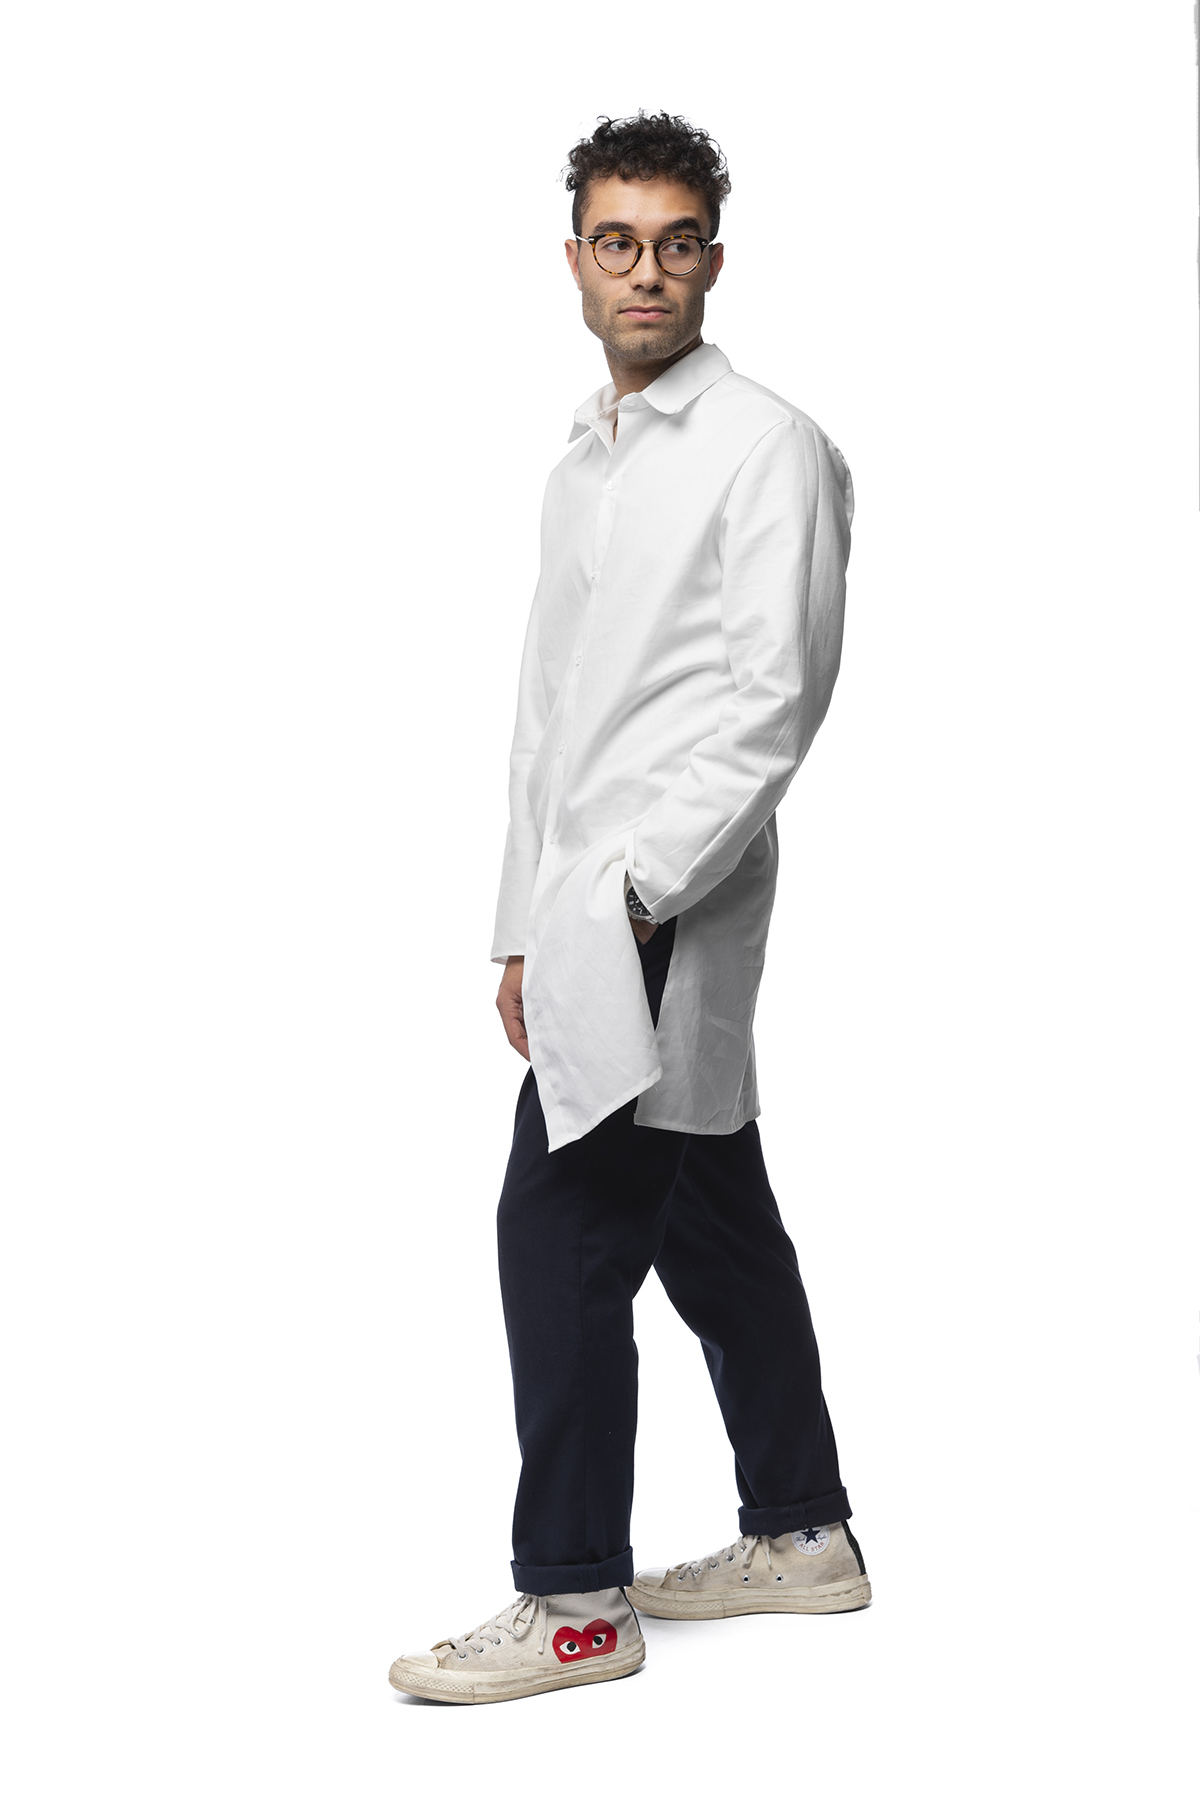 A functional clothing design of a long-sleeved, white shirt that goes down to just above the knees.